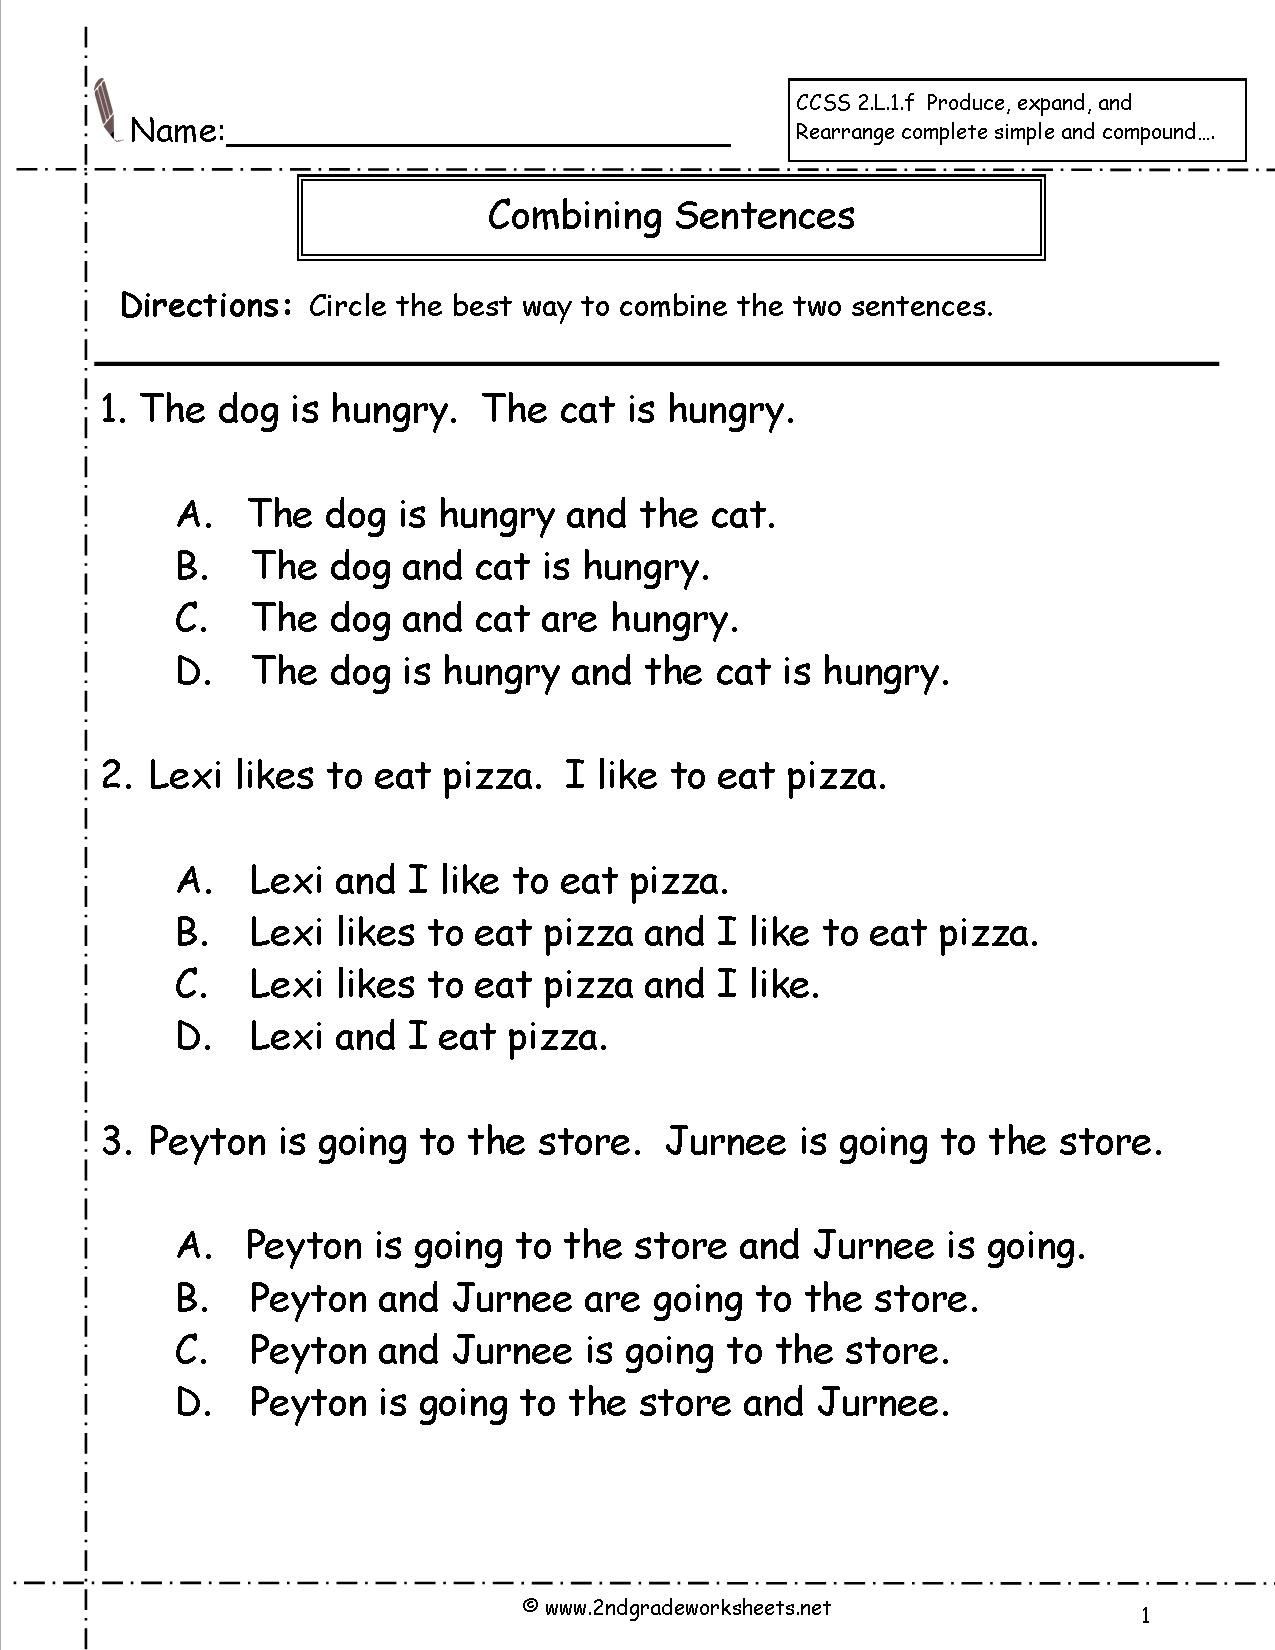 Complete Sentences Worksheets 3rd Grade Bining Sentences Worksheet